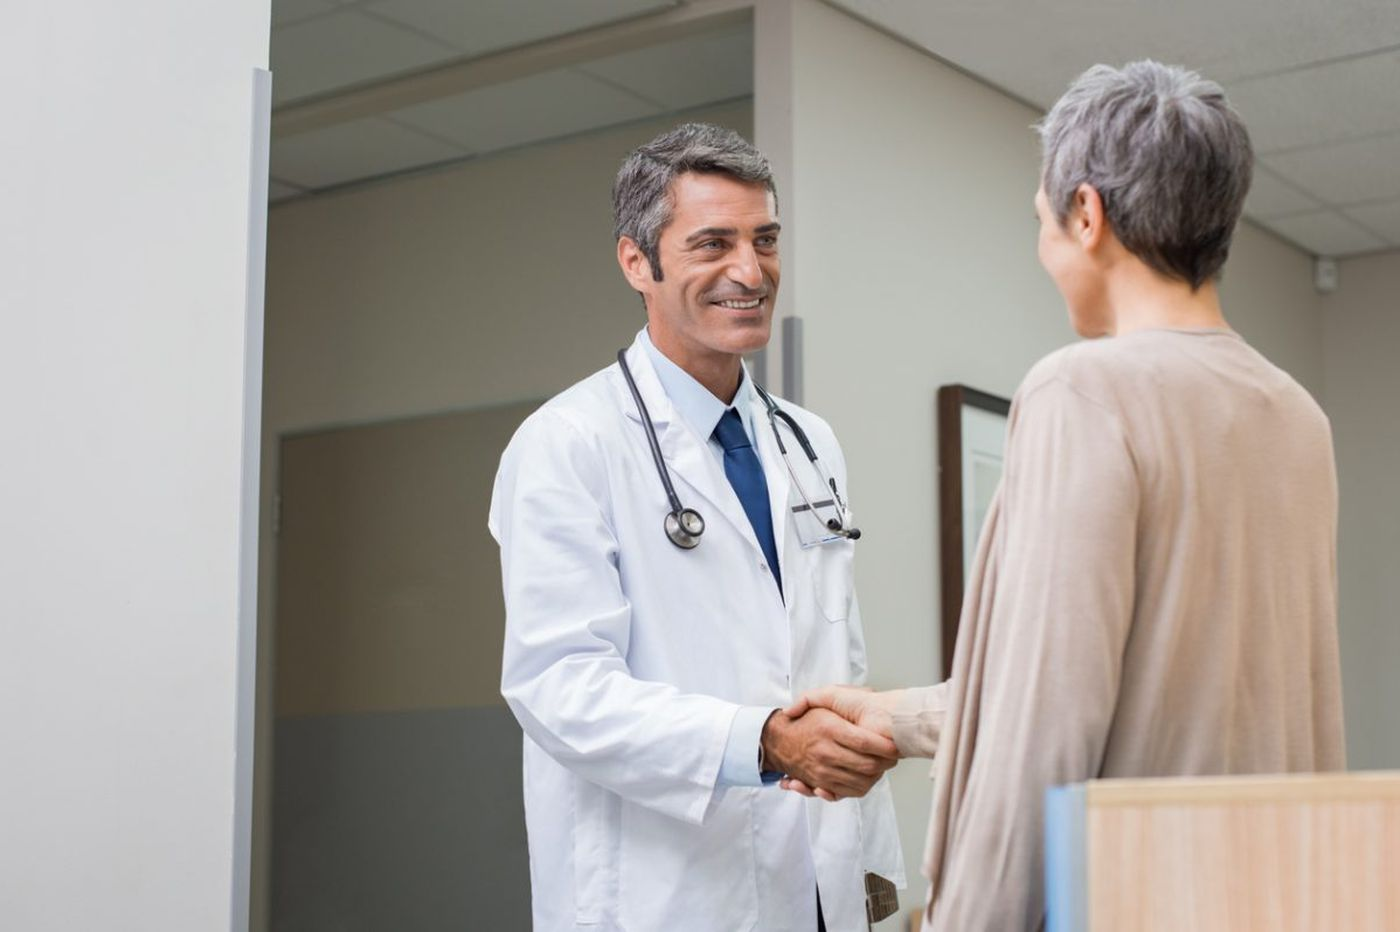 Medicaid work requirements would violate doctors' oath to 'do no harm' to patients